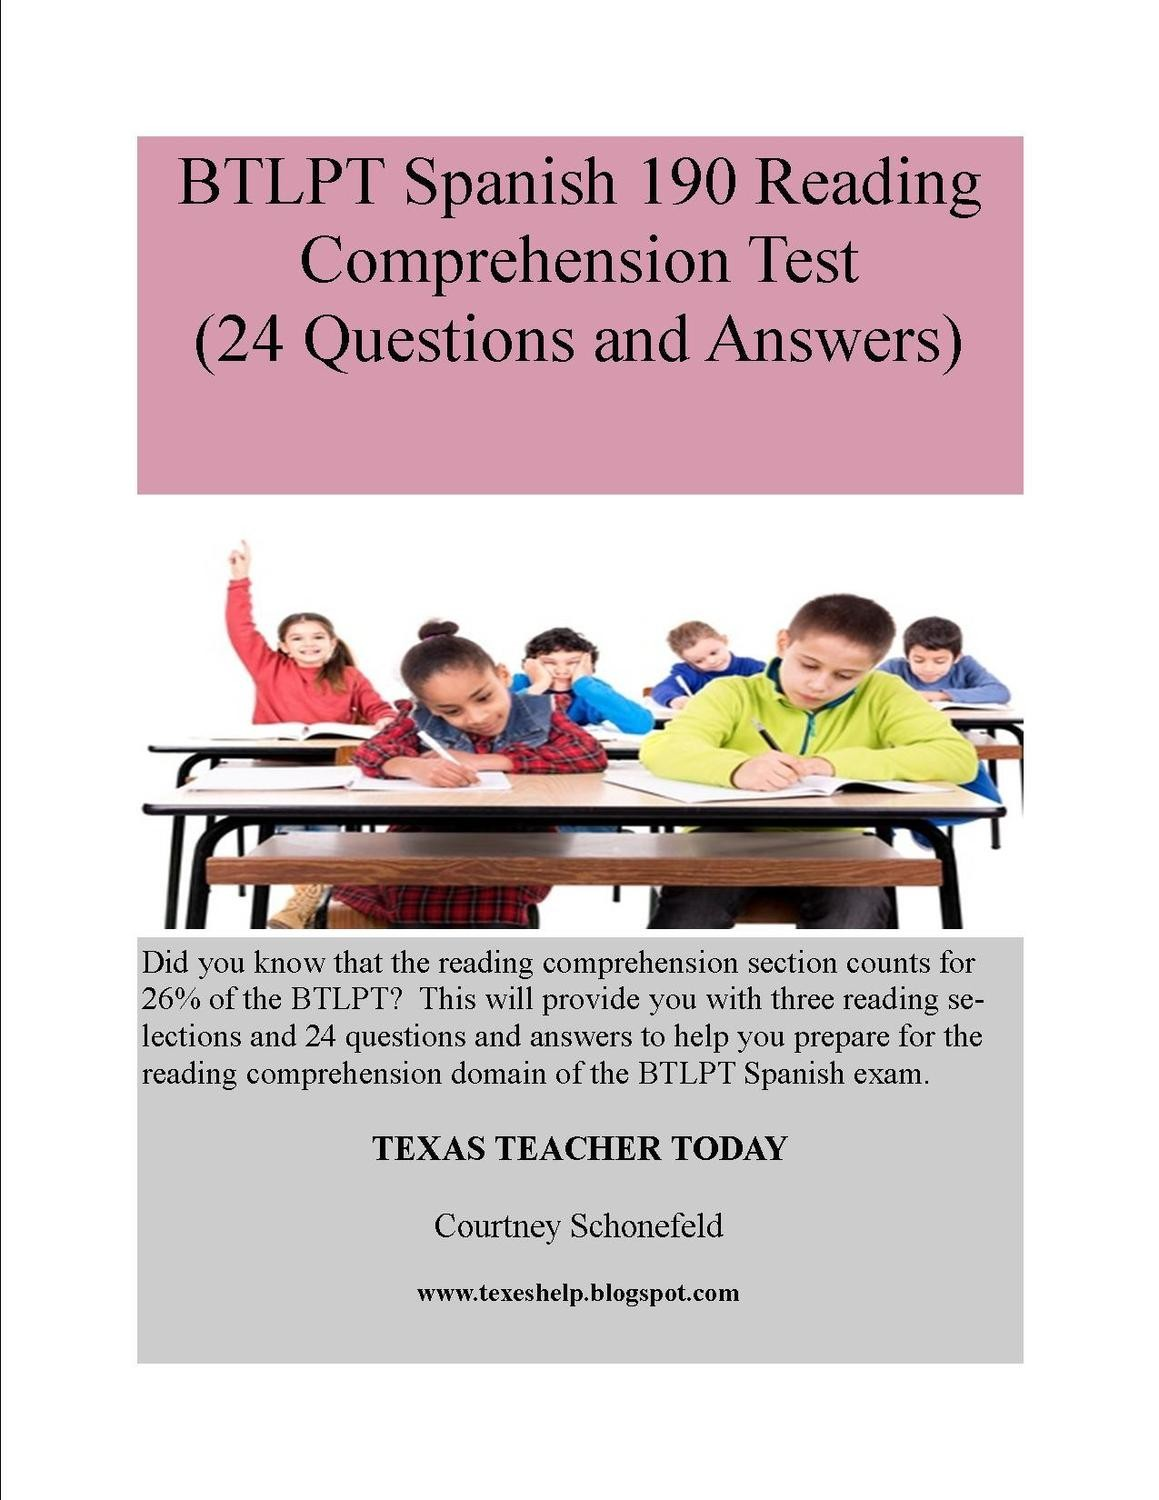 BTLPT Reading Comprehension Test